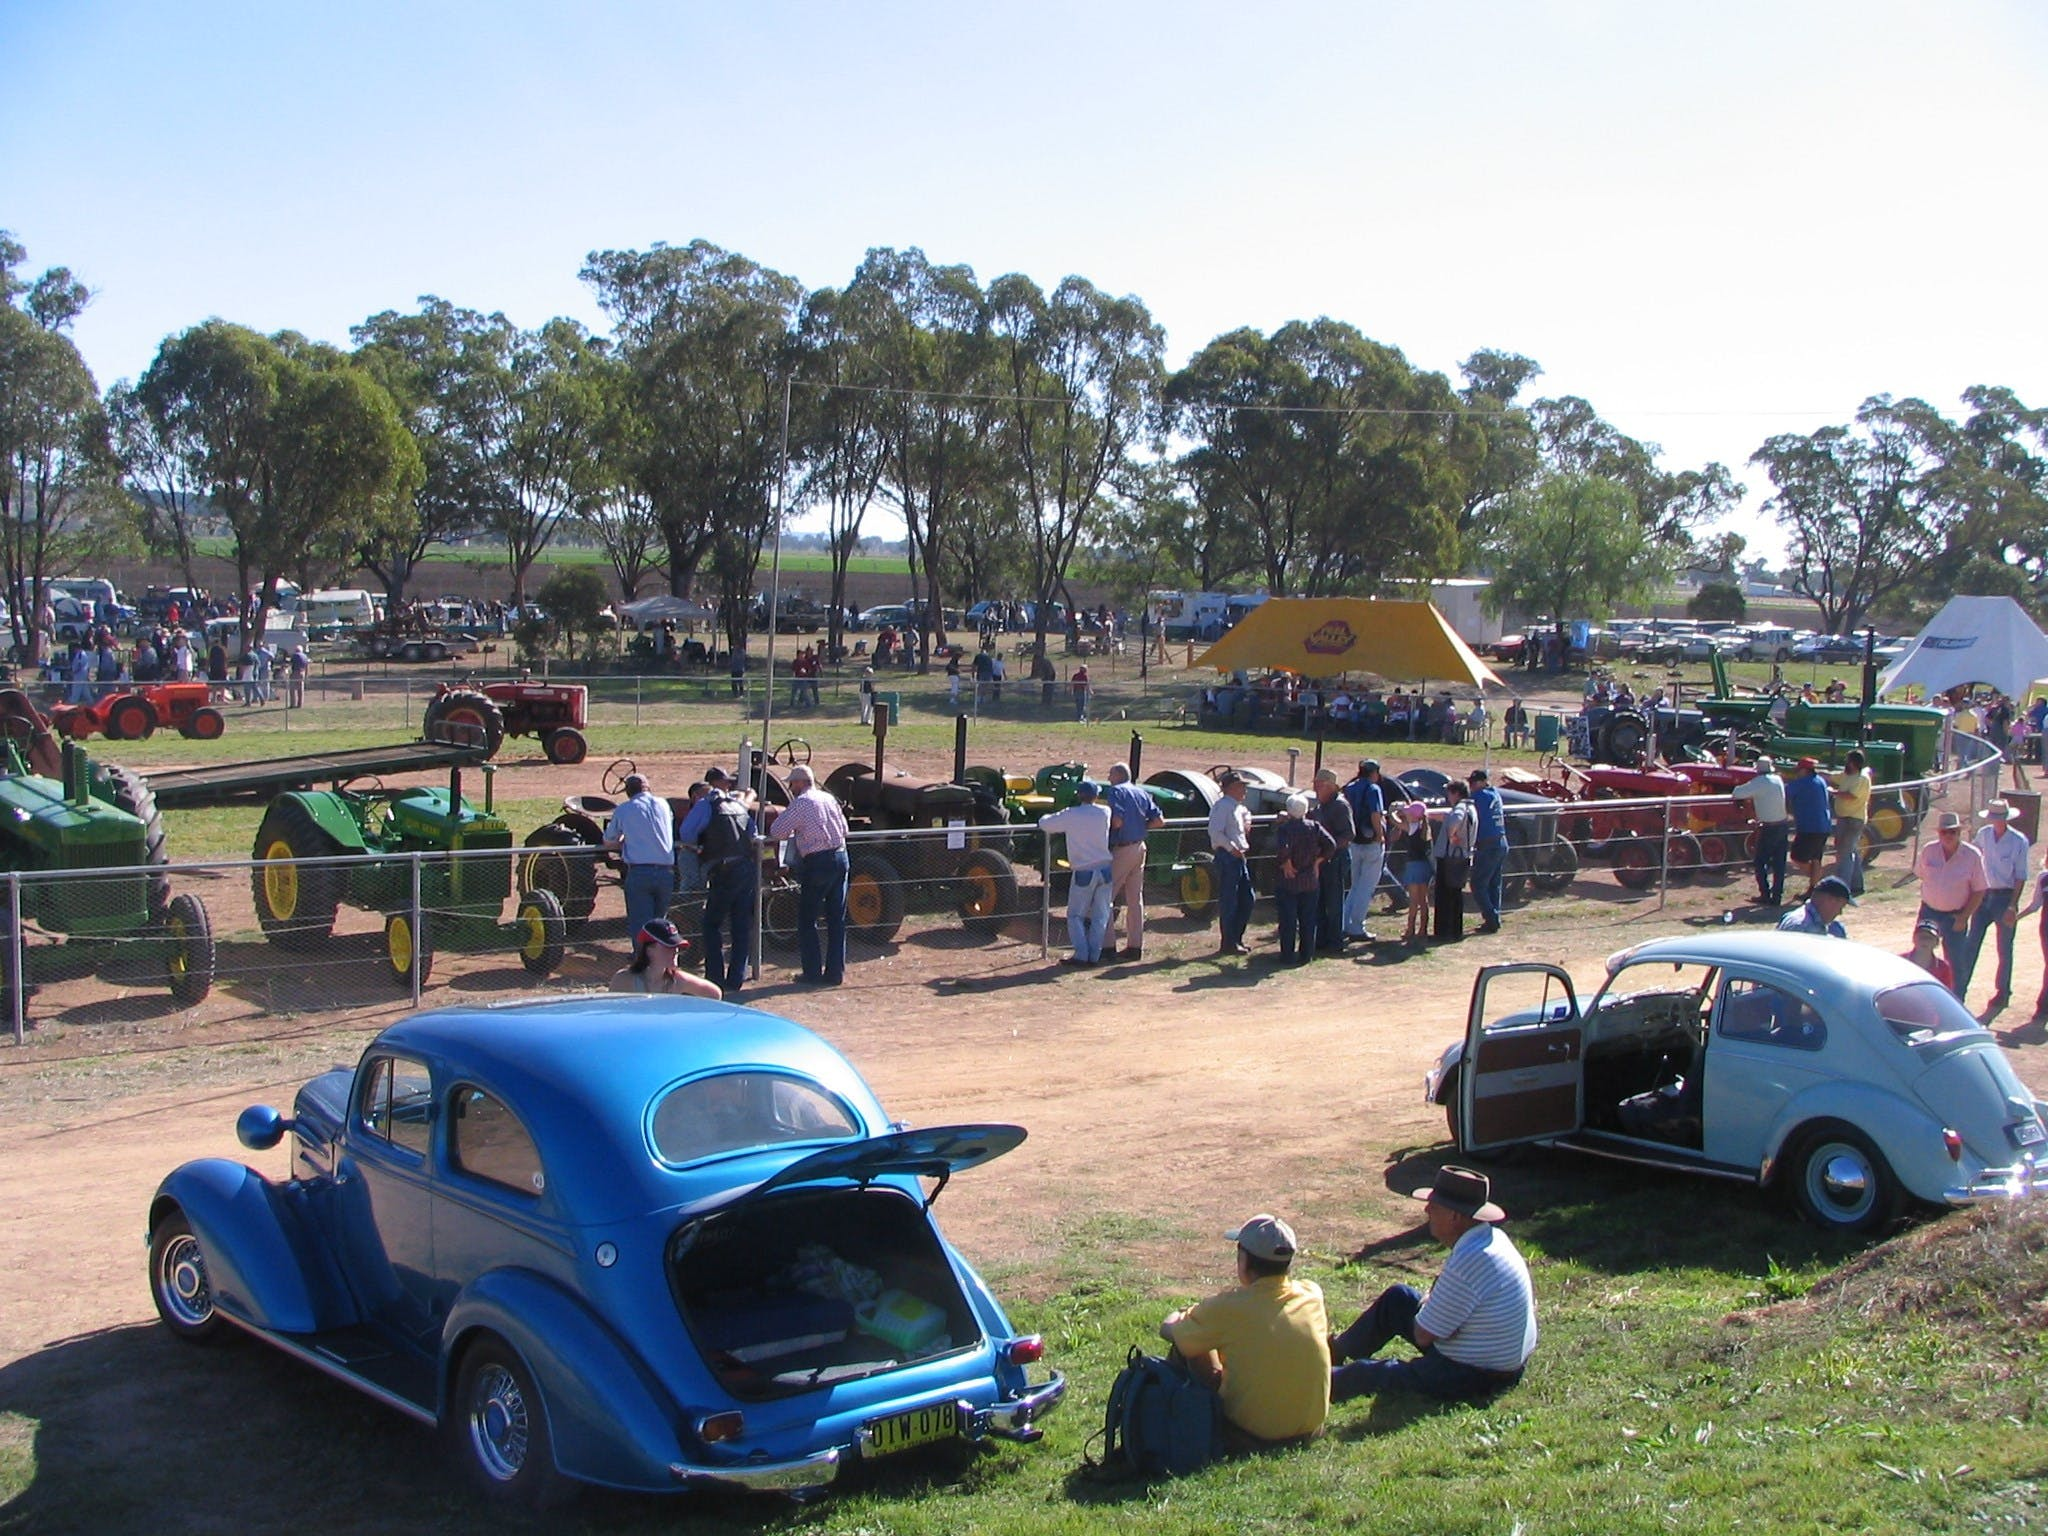 Quirindi Rural Heritage Village - Vintage Machinery and Miniature Railway Rally and Swap Meet - Accommodation Guide